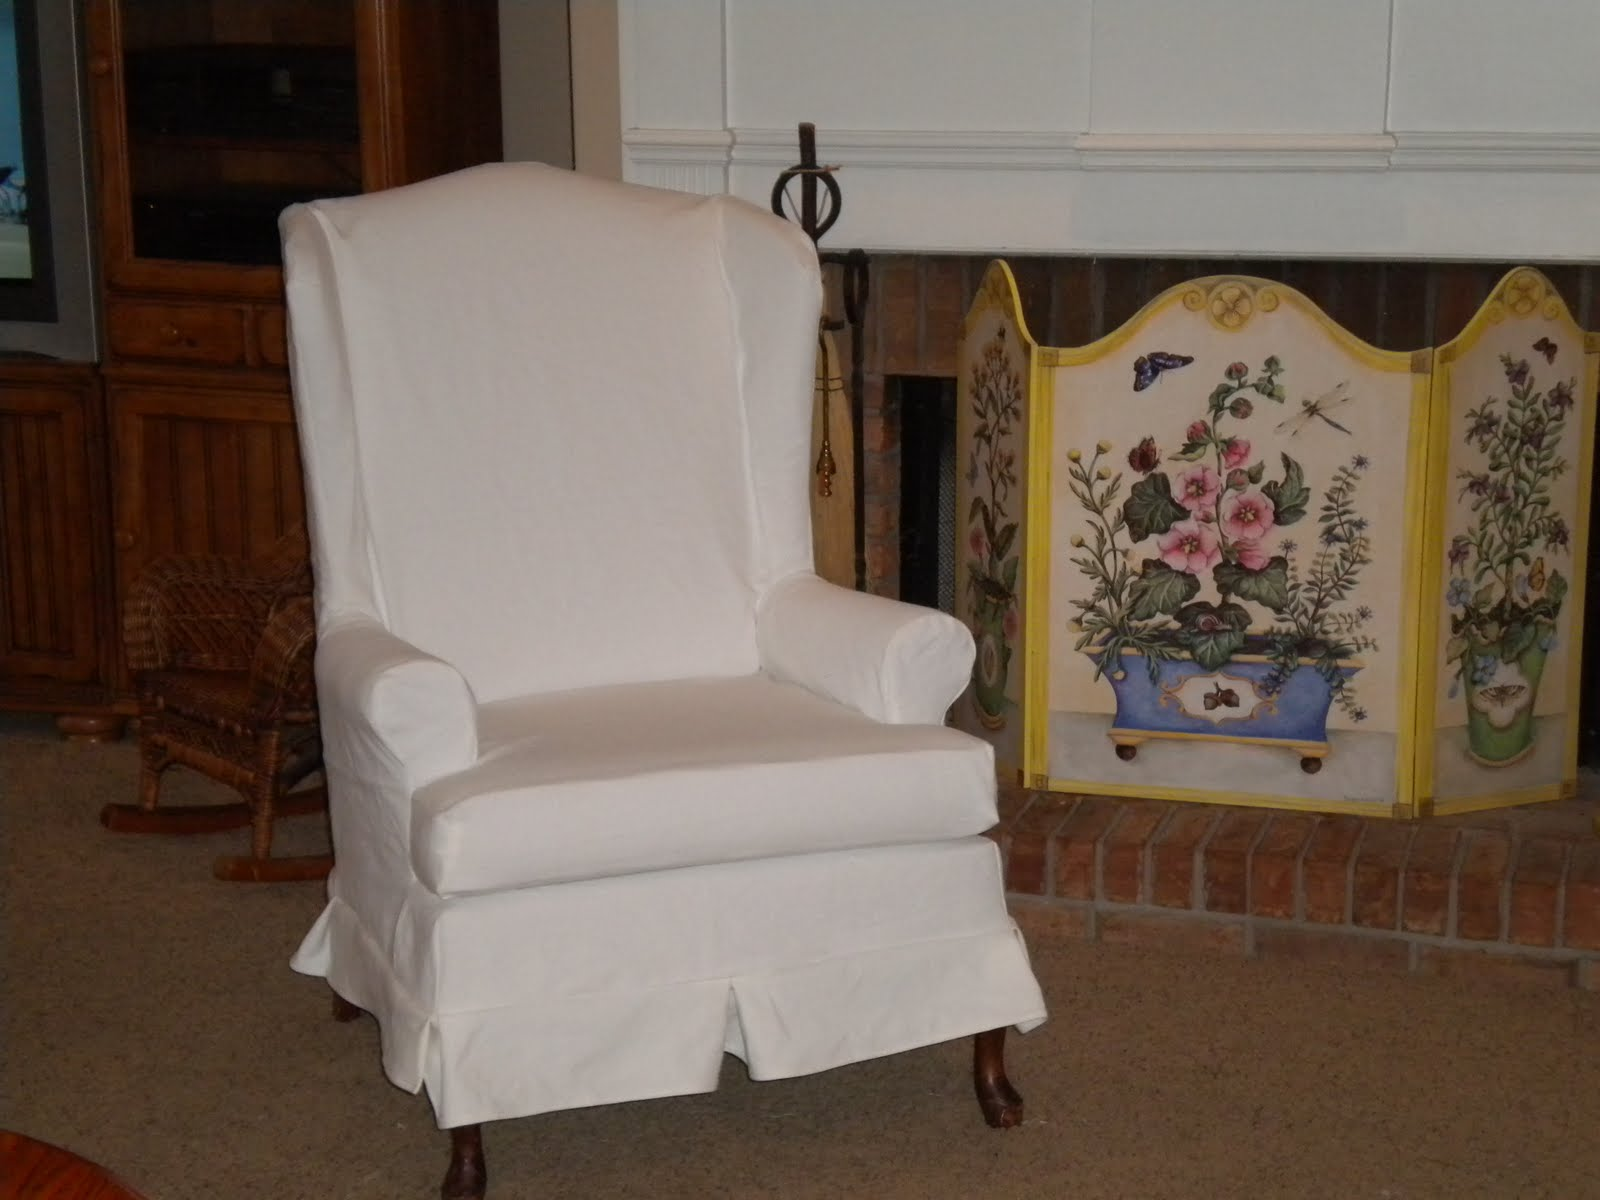 hold and first on same that slipcover for had chair we out life cancer i beneath heart found wingback august the put mom but cloth img was of week drop is it finished my a